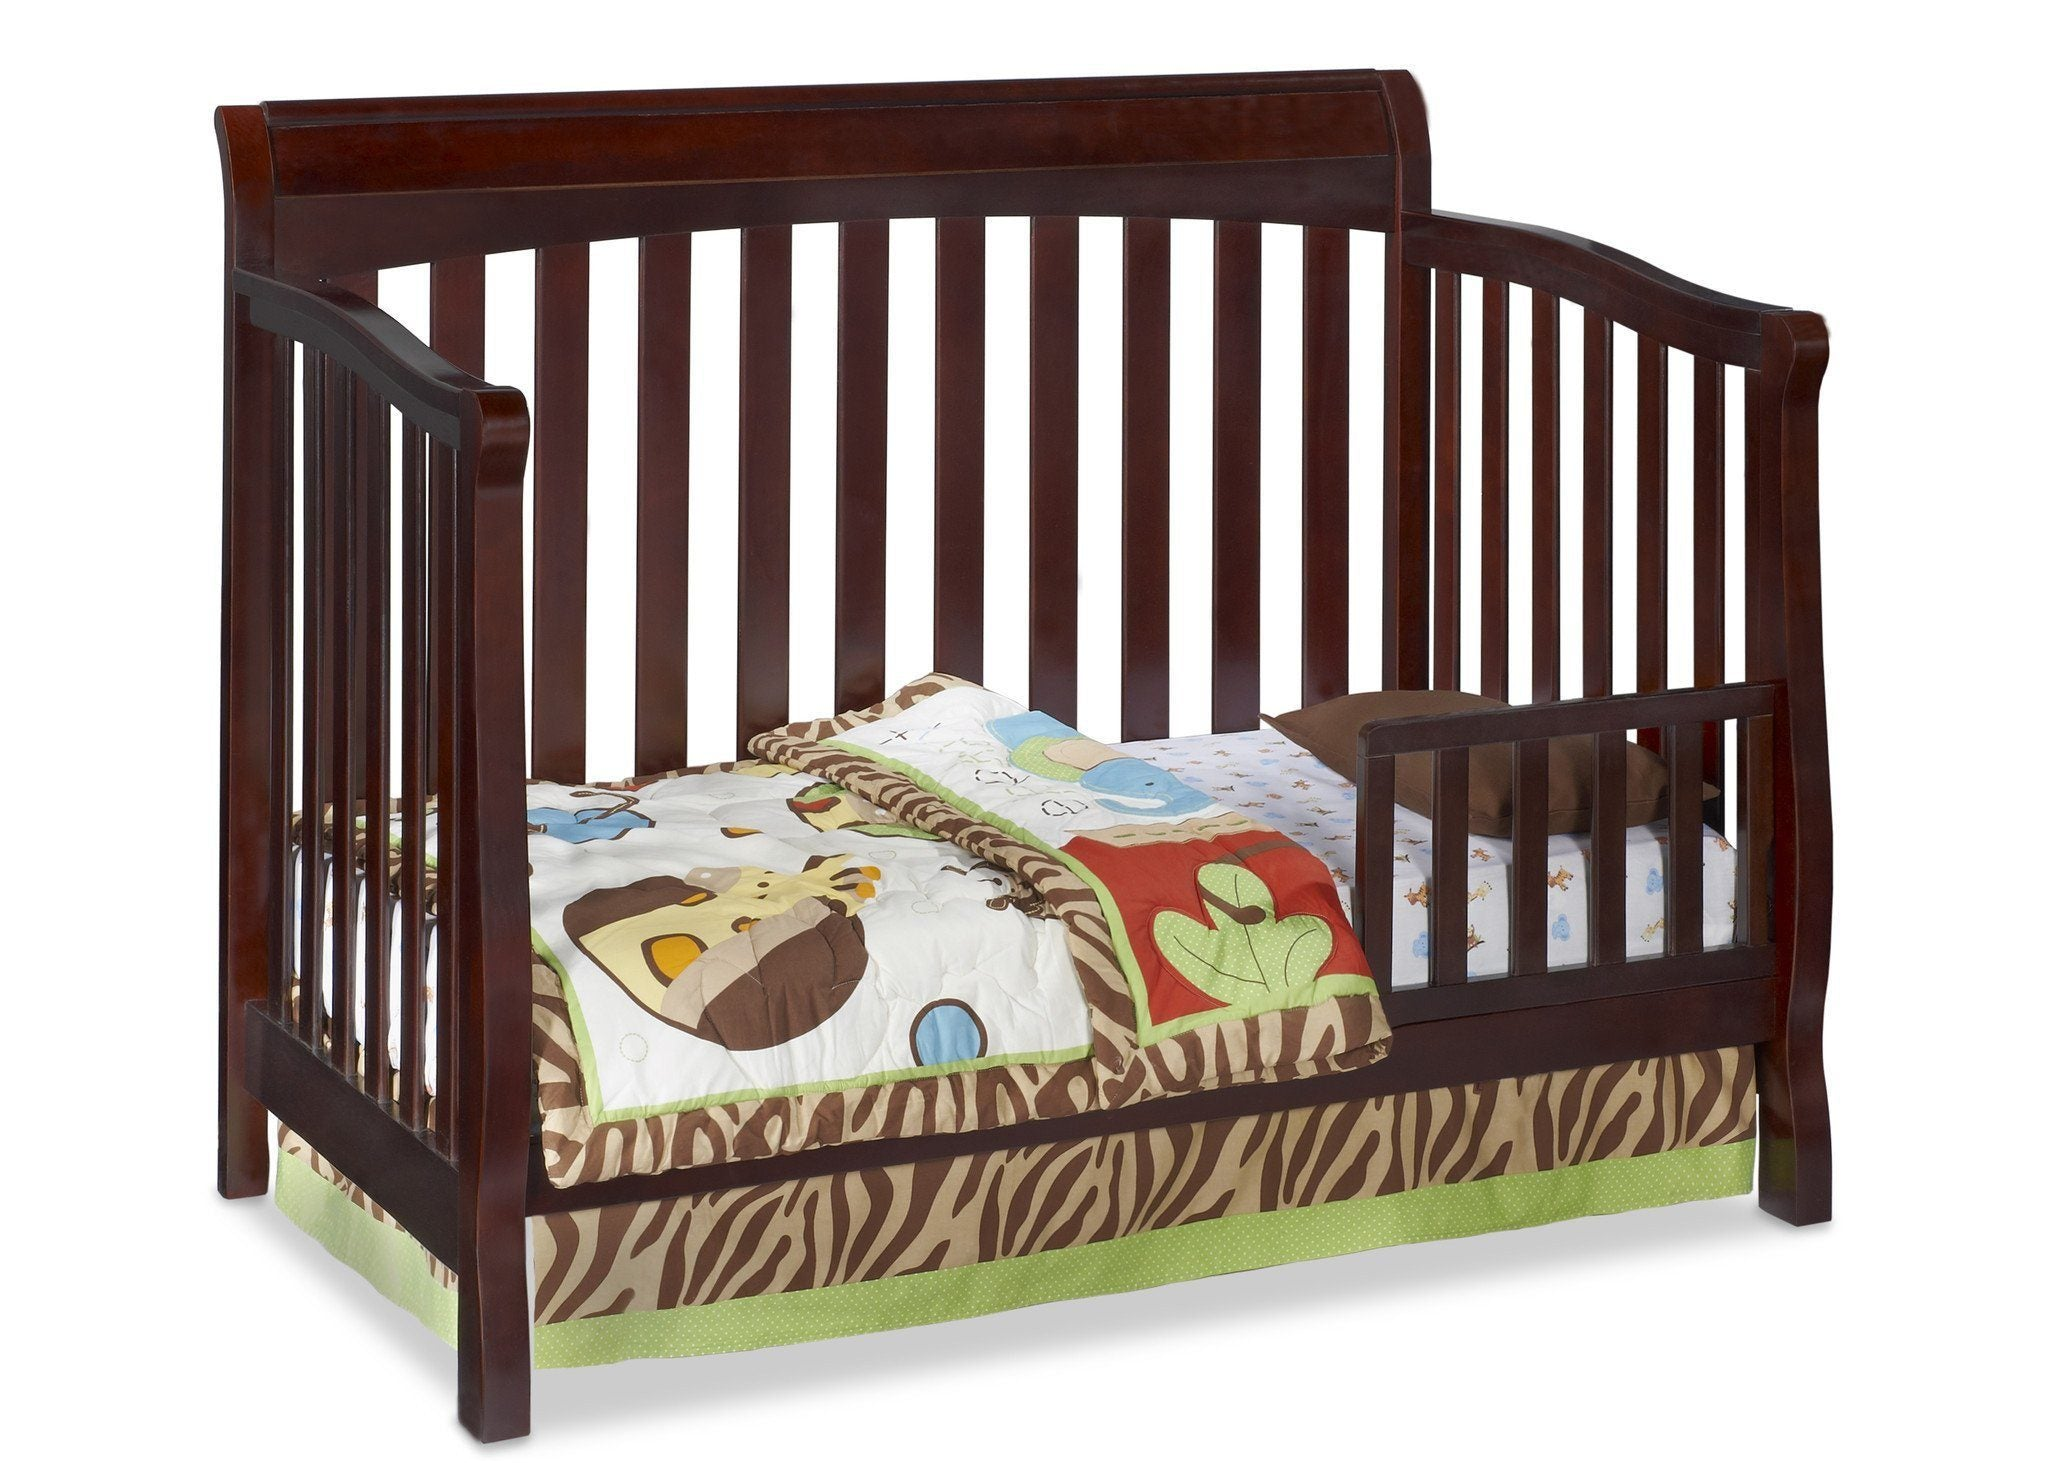 Delta Childrens Vintage Espresso (616) Eclipse 4-in-1 Toddler Bed Conversion d2d